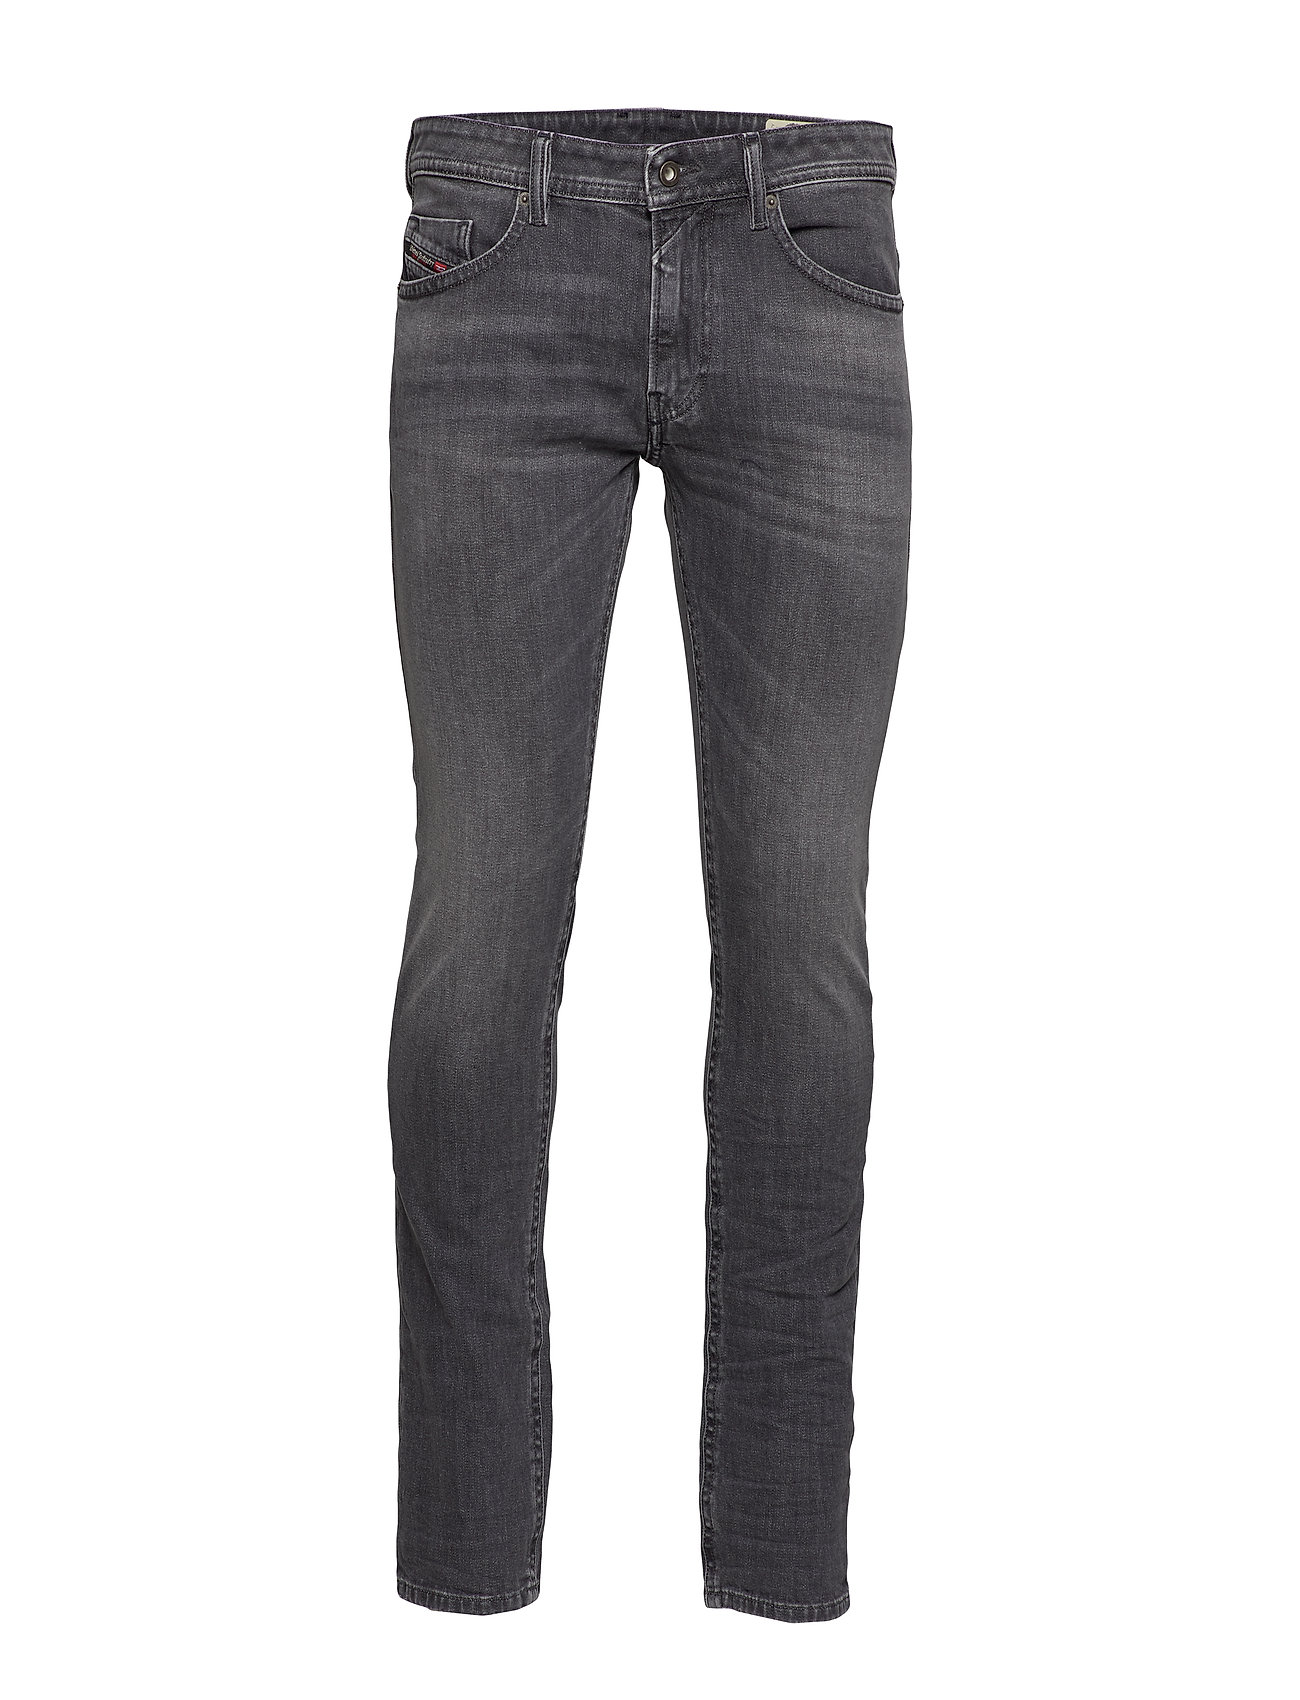 Diesel Men THOMMER-X L.34 TROUSERS - BLACK/DENIM